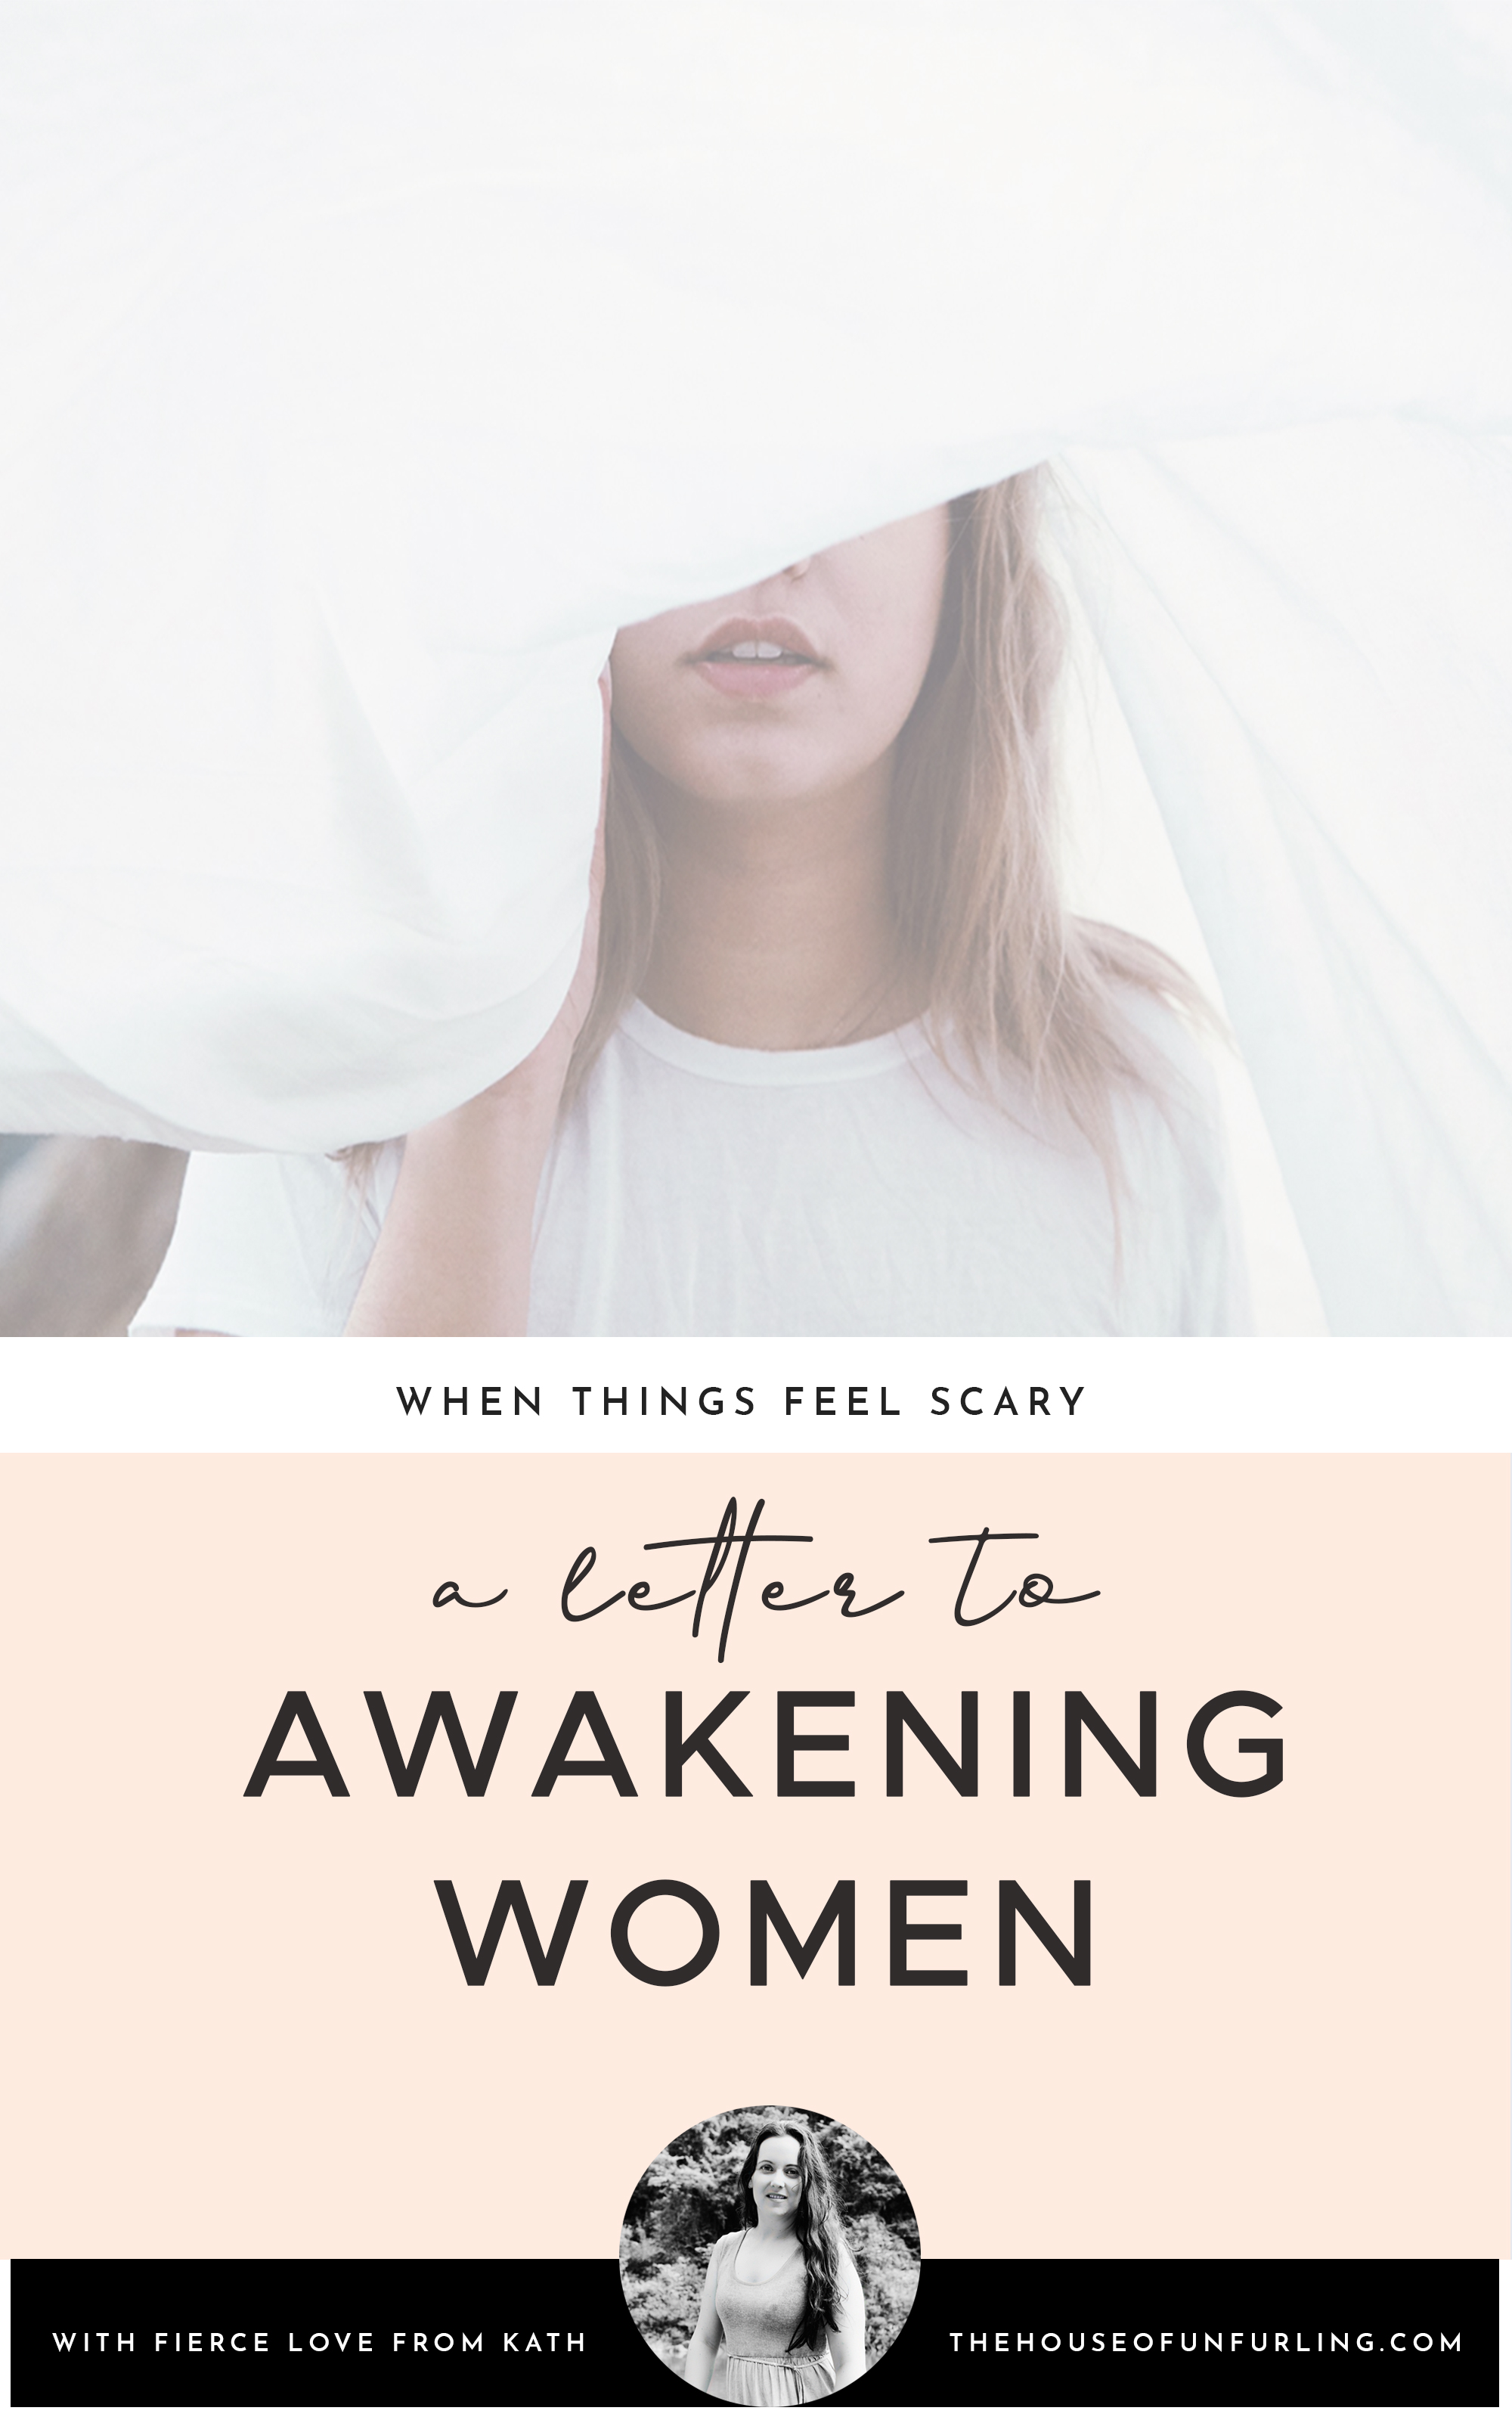 CLICK THROUGH TO READ: A letter to awakening women. From Deepening Into Intuition. With fierce love, Kath - kathleensaelens.com